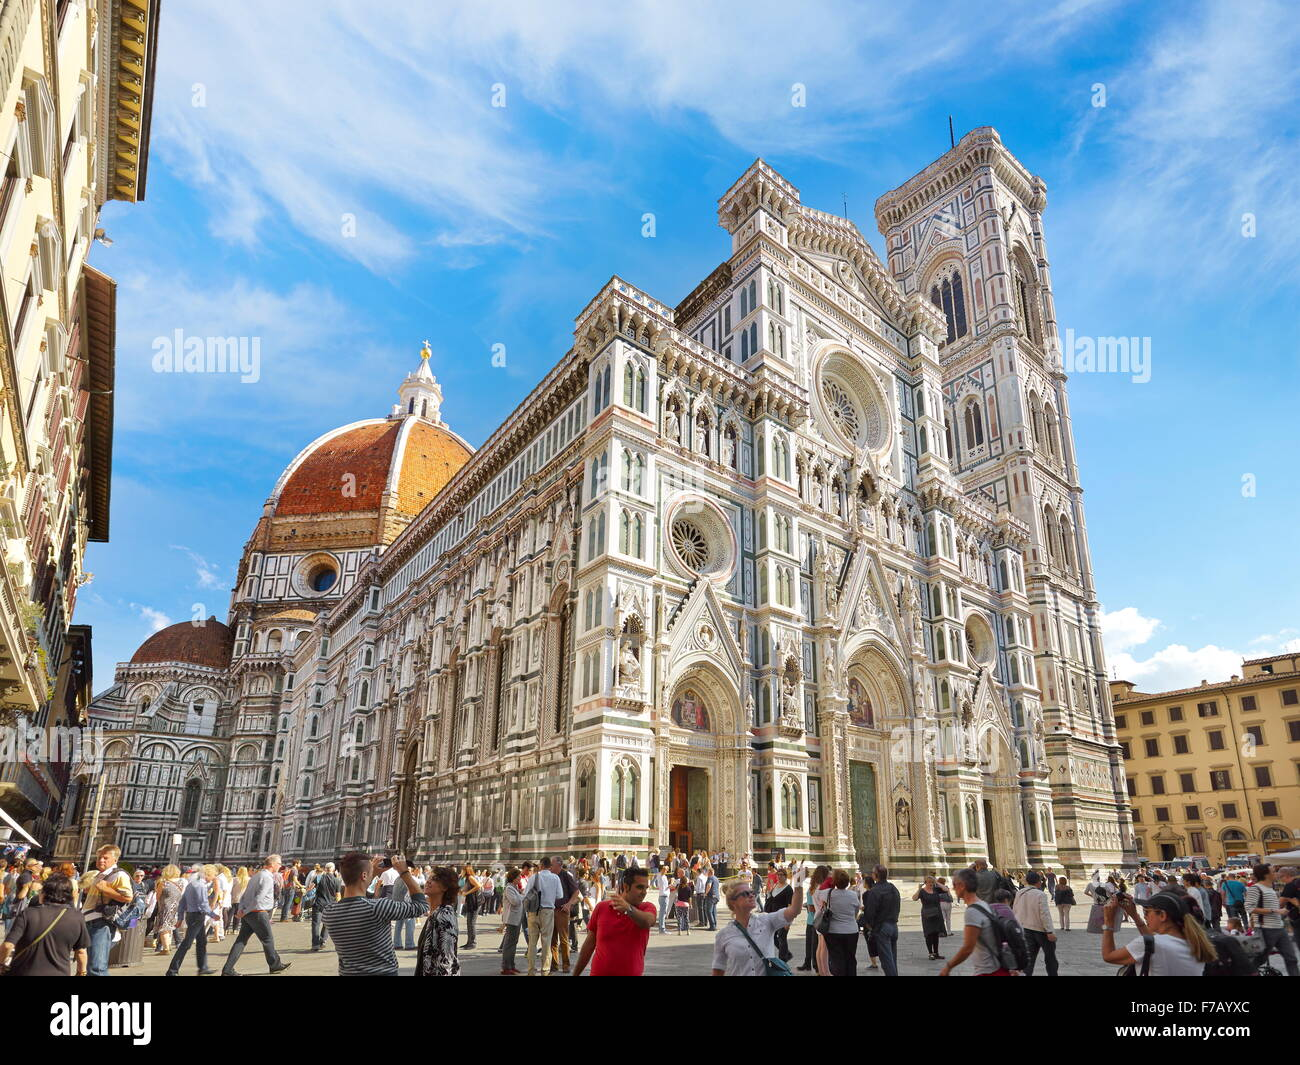 Cathedral of Santa Maria del Fiore, Florence, Tuscany, Italy - Stock Image